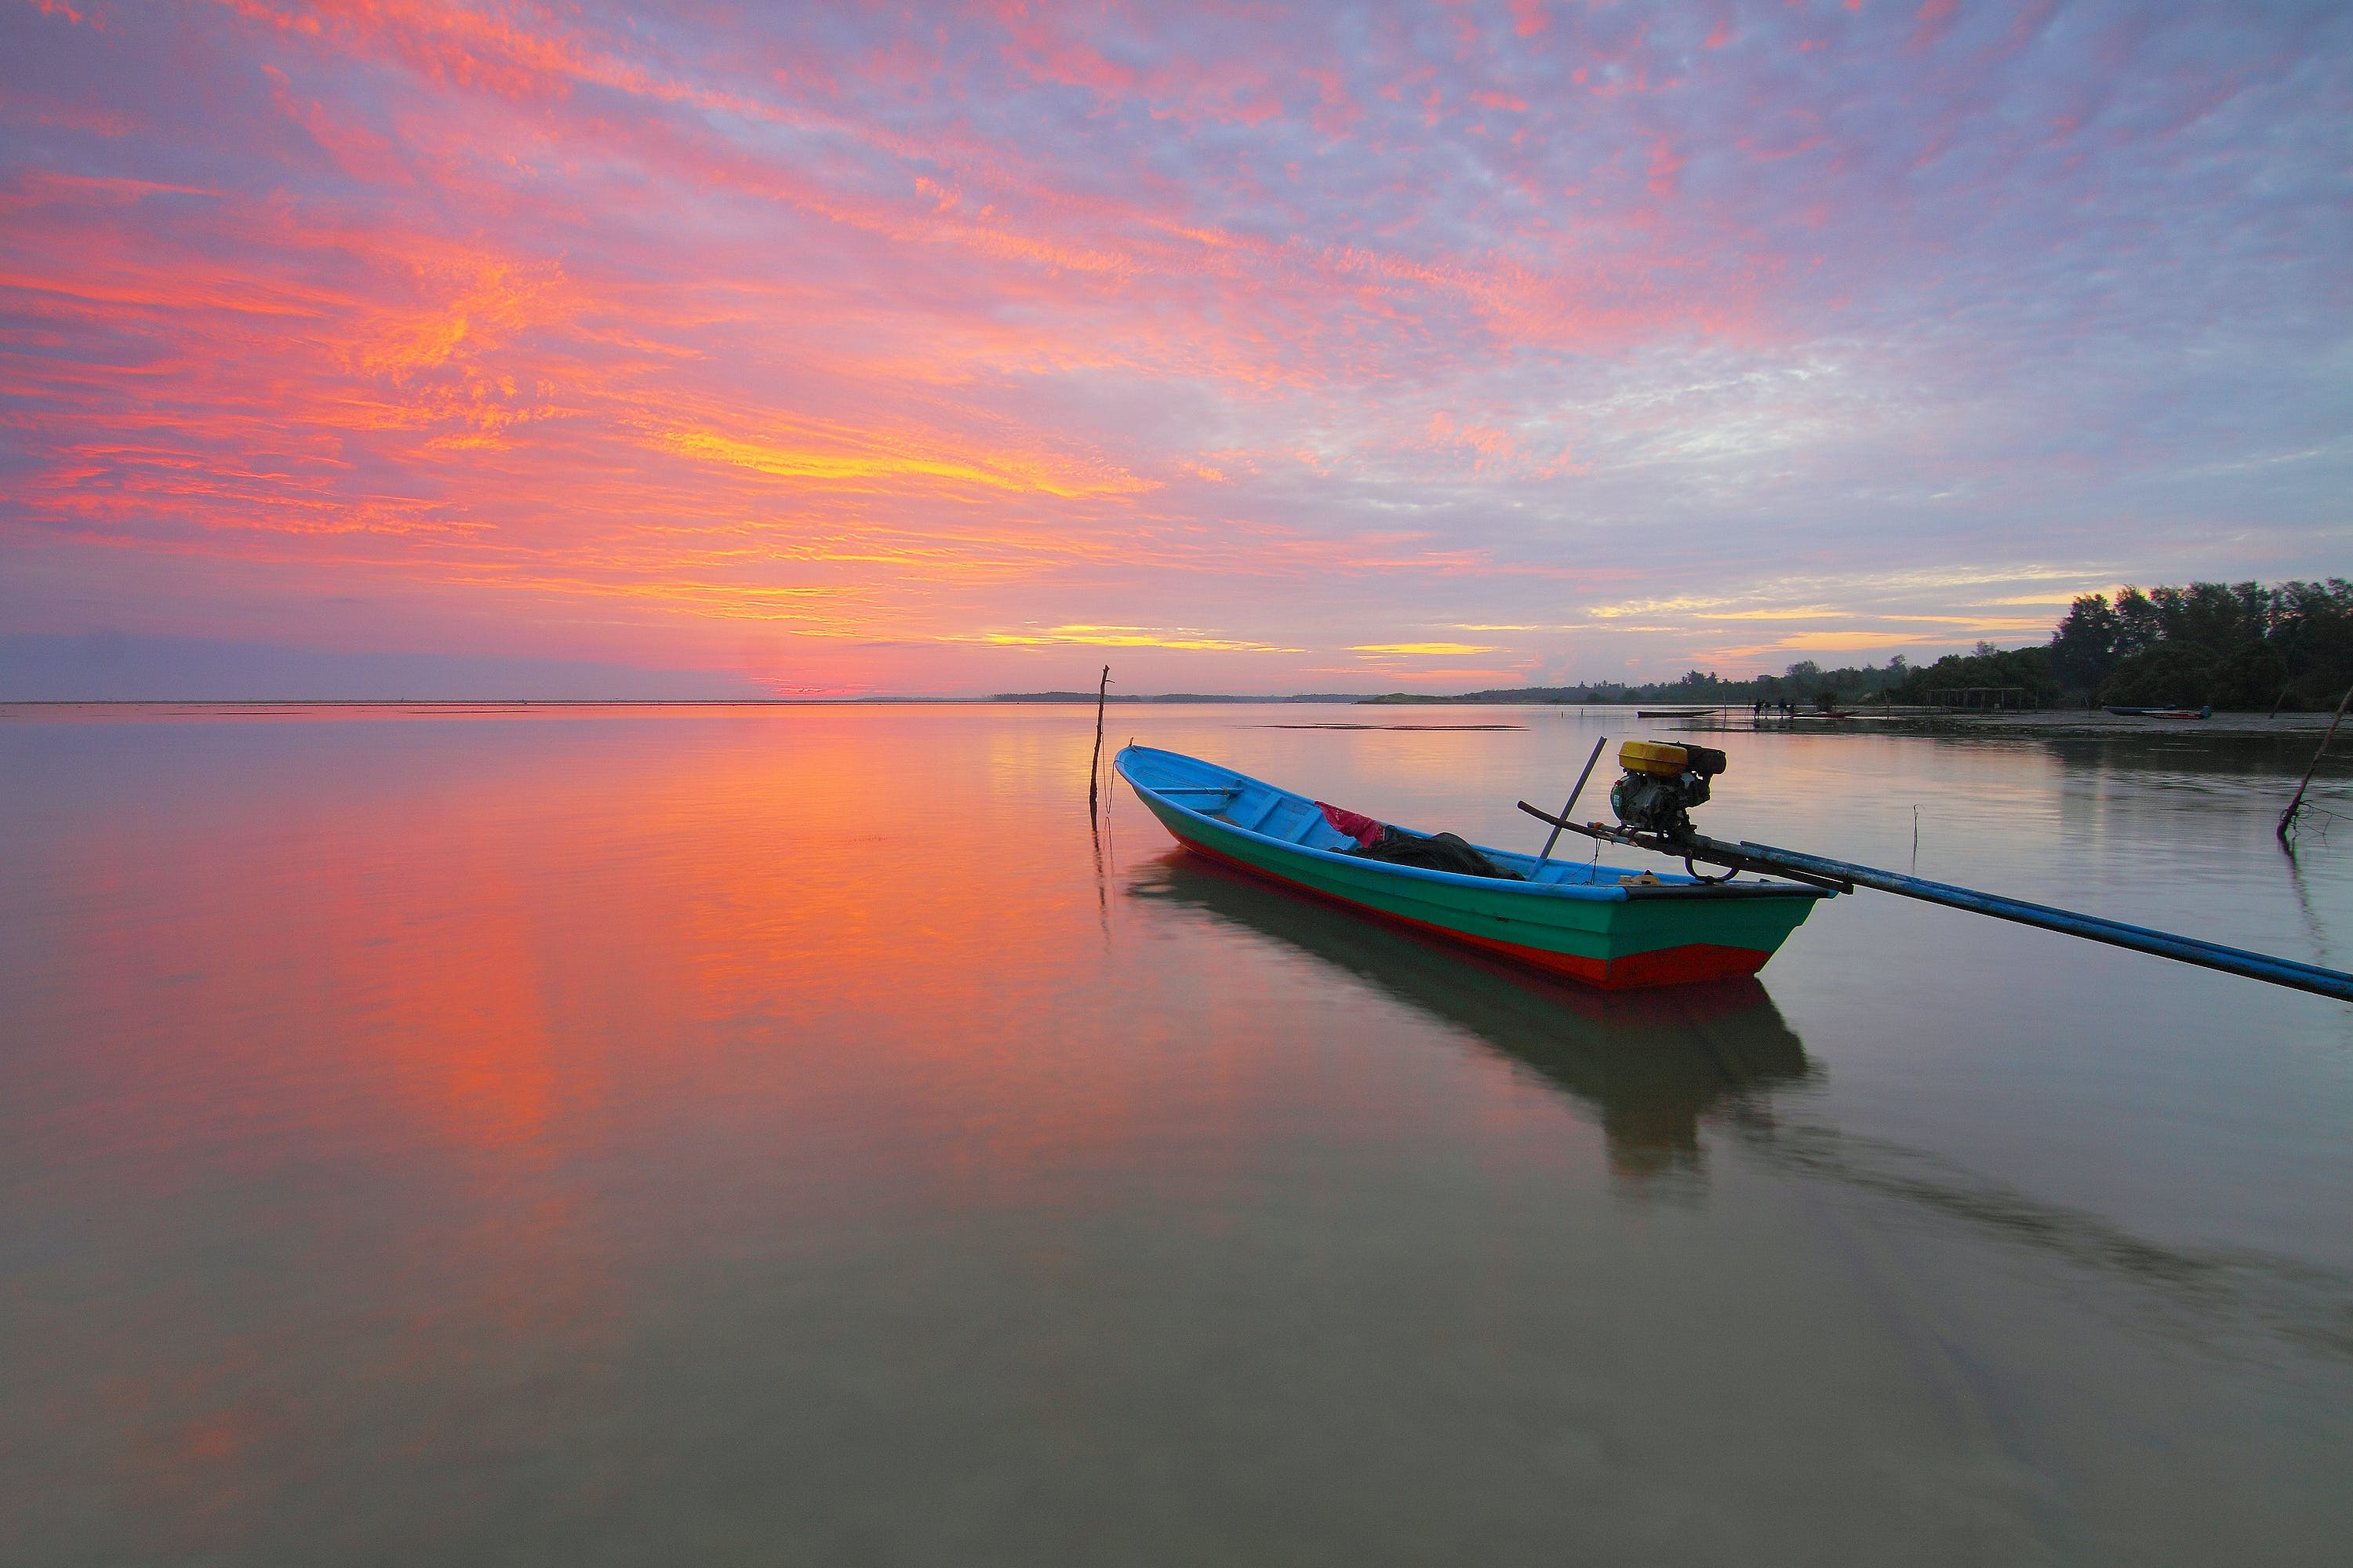 View of Boat on Water